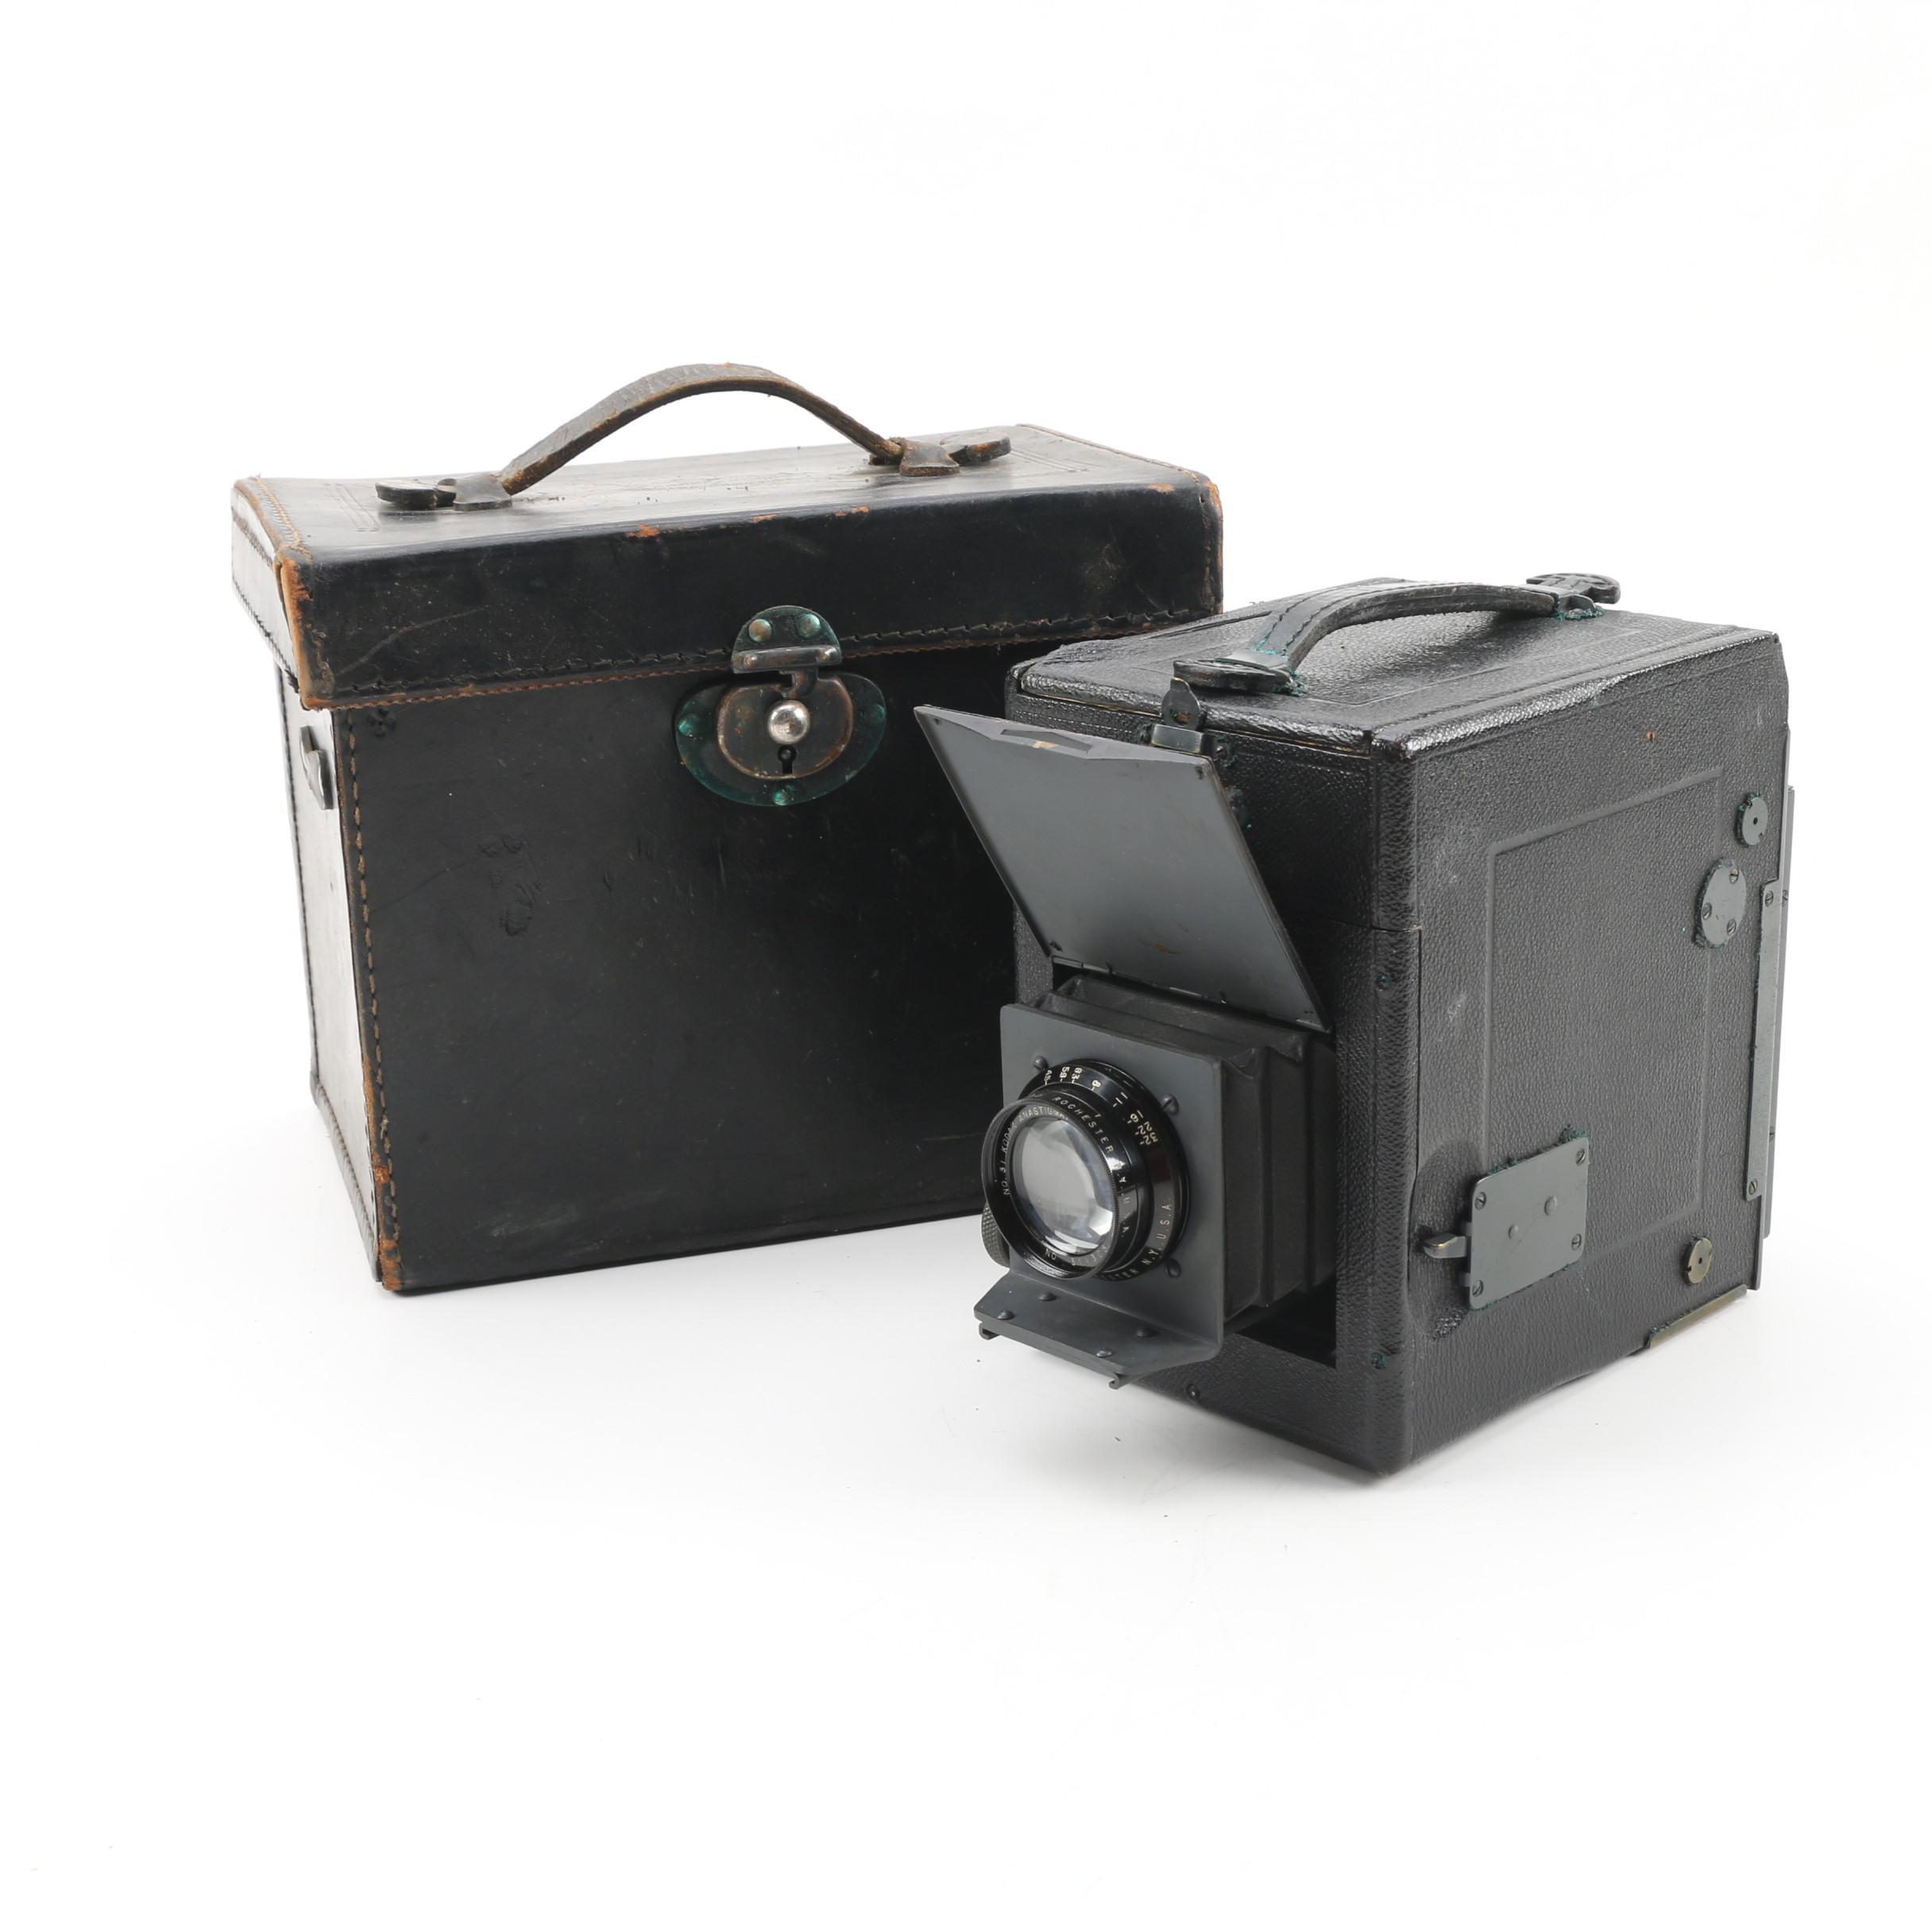 R. B. Graflex Series B Camera with Case, Early- to Mid 20th Century